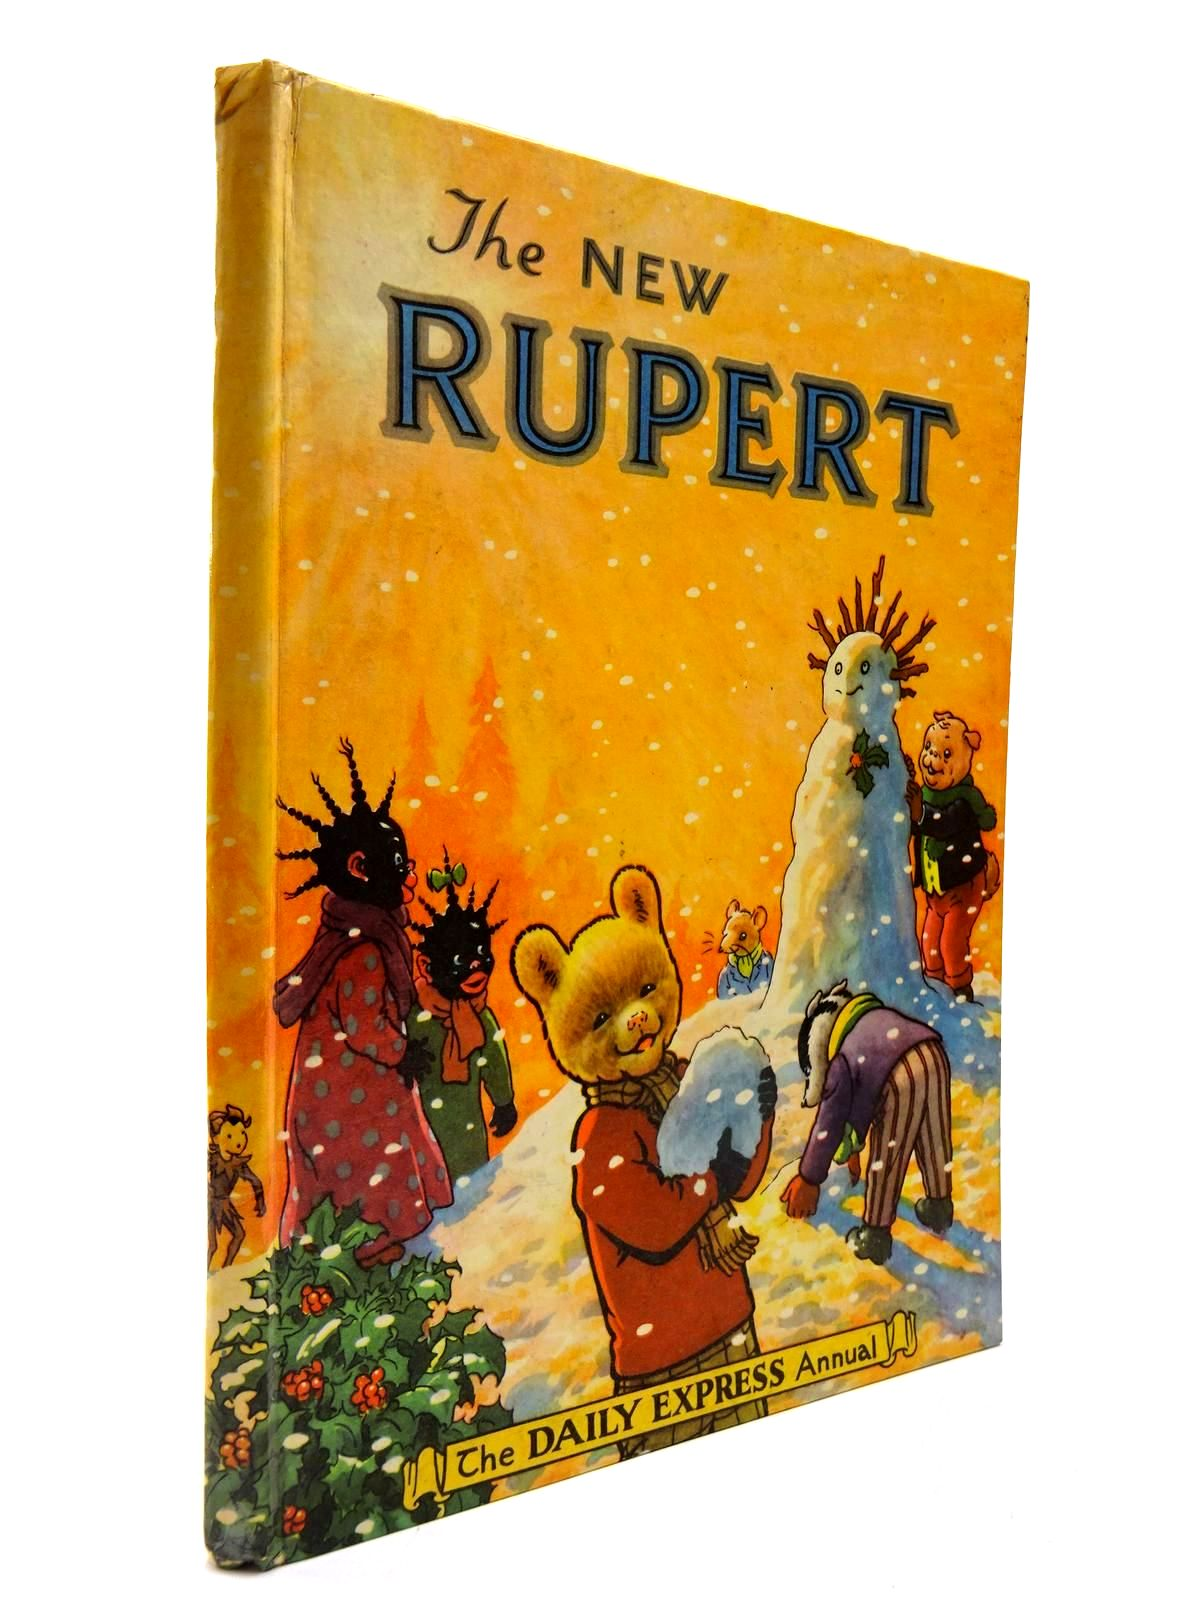 Photo of RUPERT ANNUAL 1954 - THE NEW RUPERT written by Bestall, Alfred illustrated by Bestall, Alfred published by Daily Express (STOCK CODE: 2130475)  for sale by Stella & Rose's Books